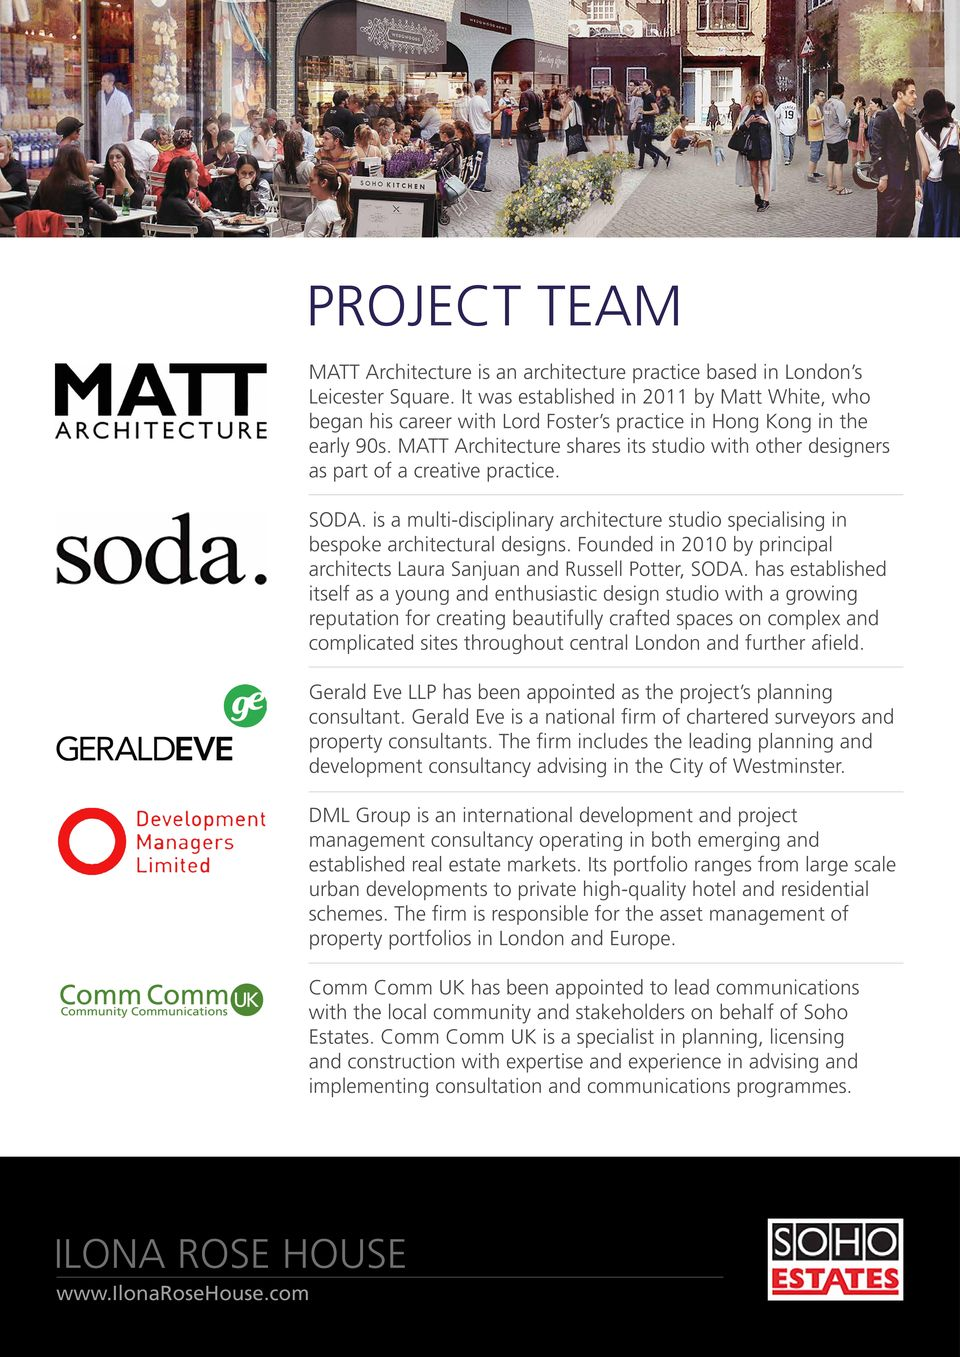 MATT Architecture shares its studio with other designers as part of a creative practice. SODA. is a multi-disciplinary architecture studio specialising in bespoke architectural designs.